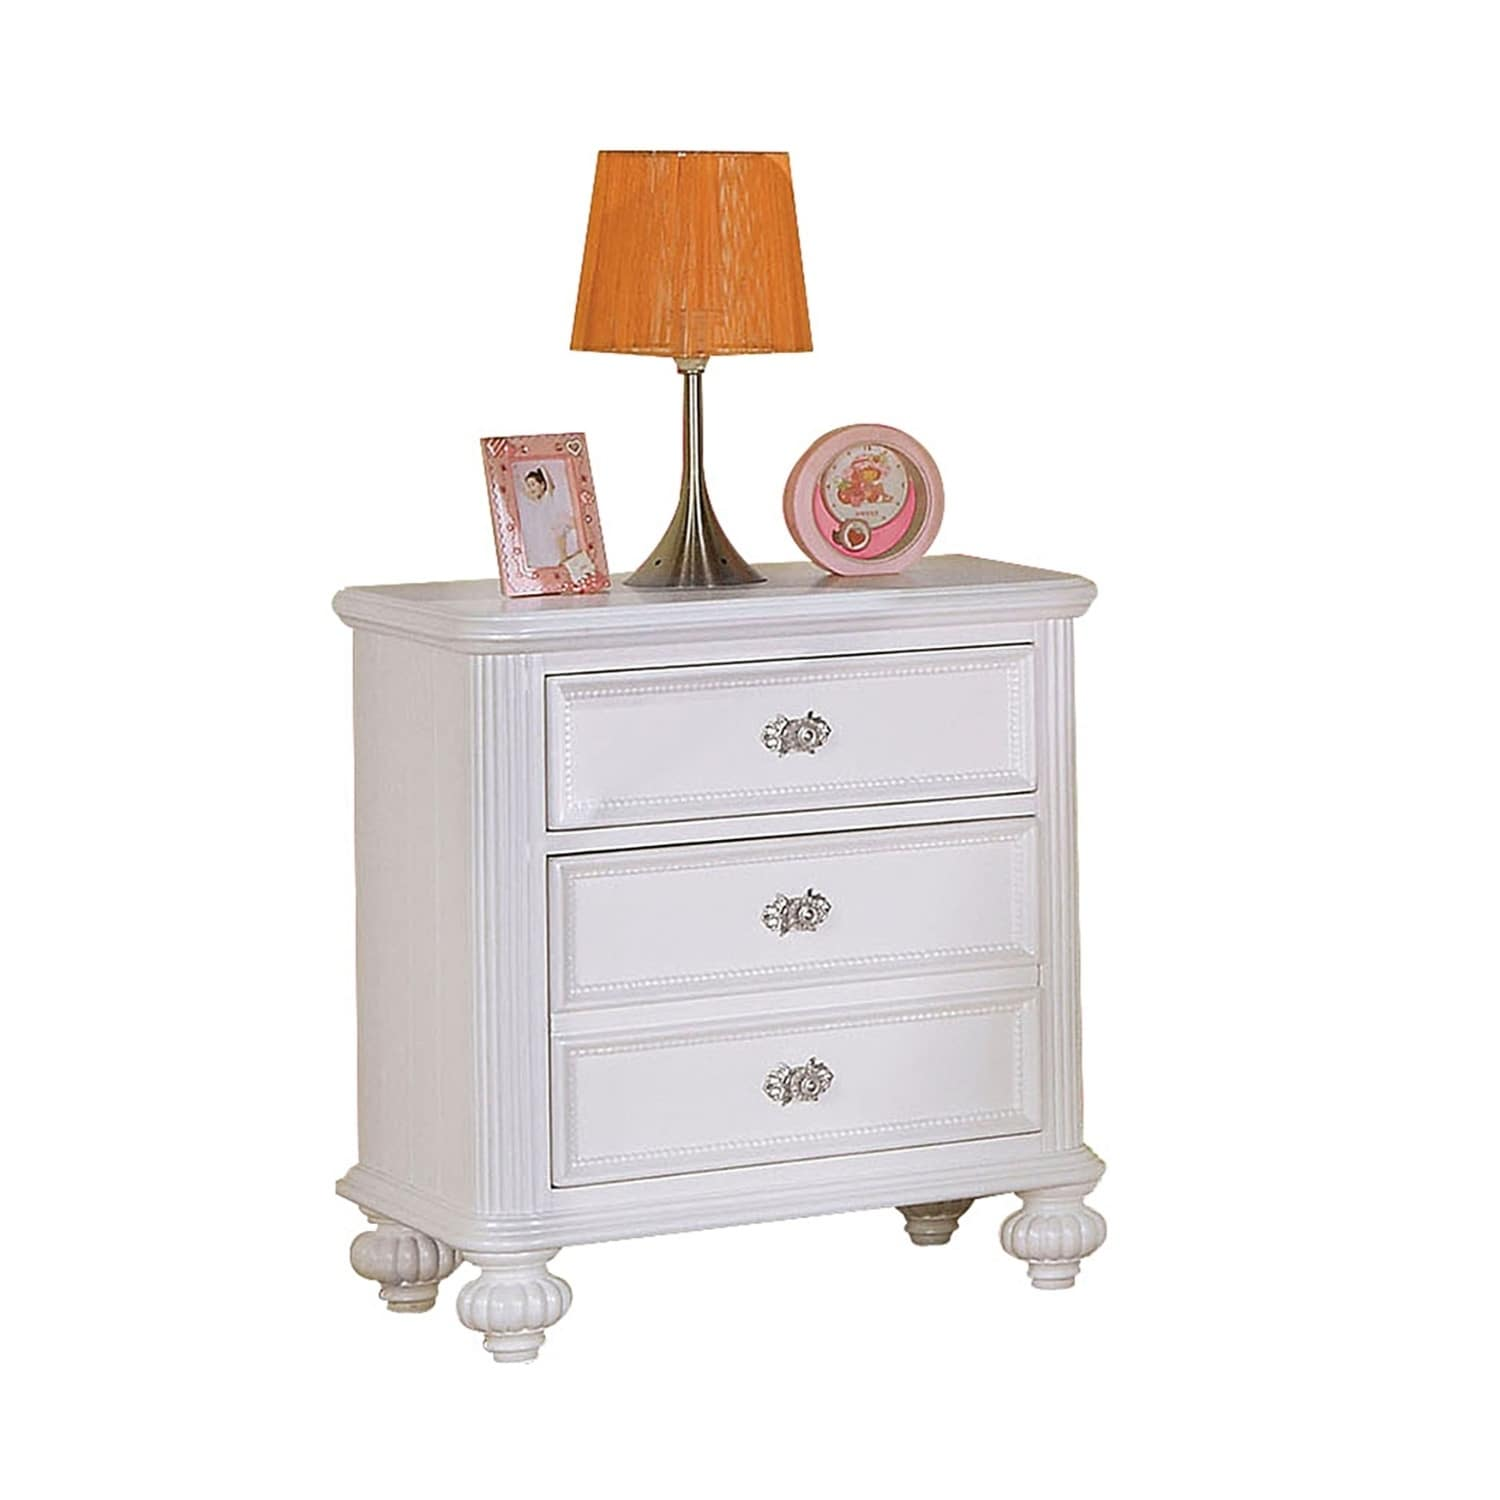 Transitional Wooden Three Drawers Nightstand With Round Glass Knobs White